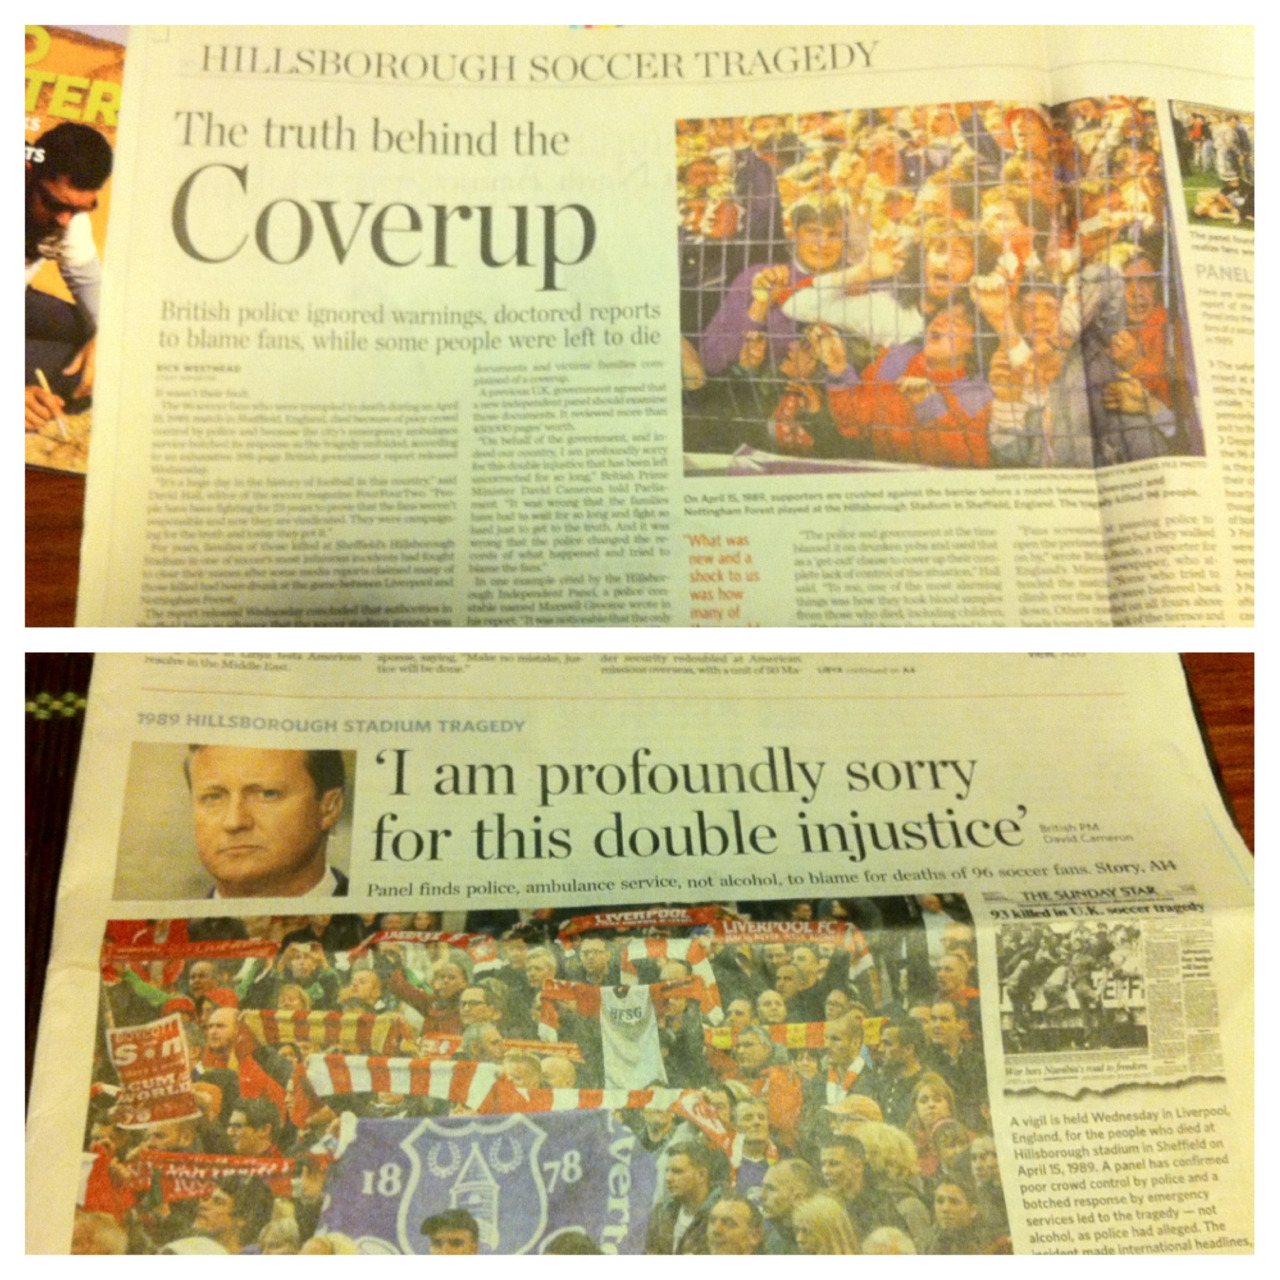 Hillsborough coverage in Thursday's Toronto Star